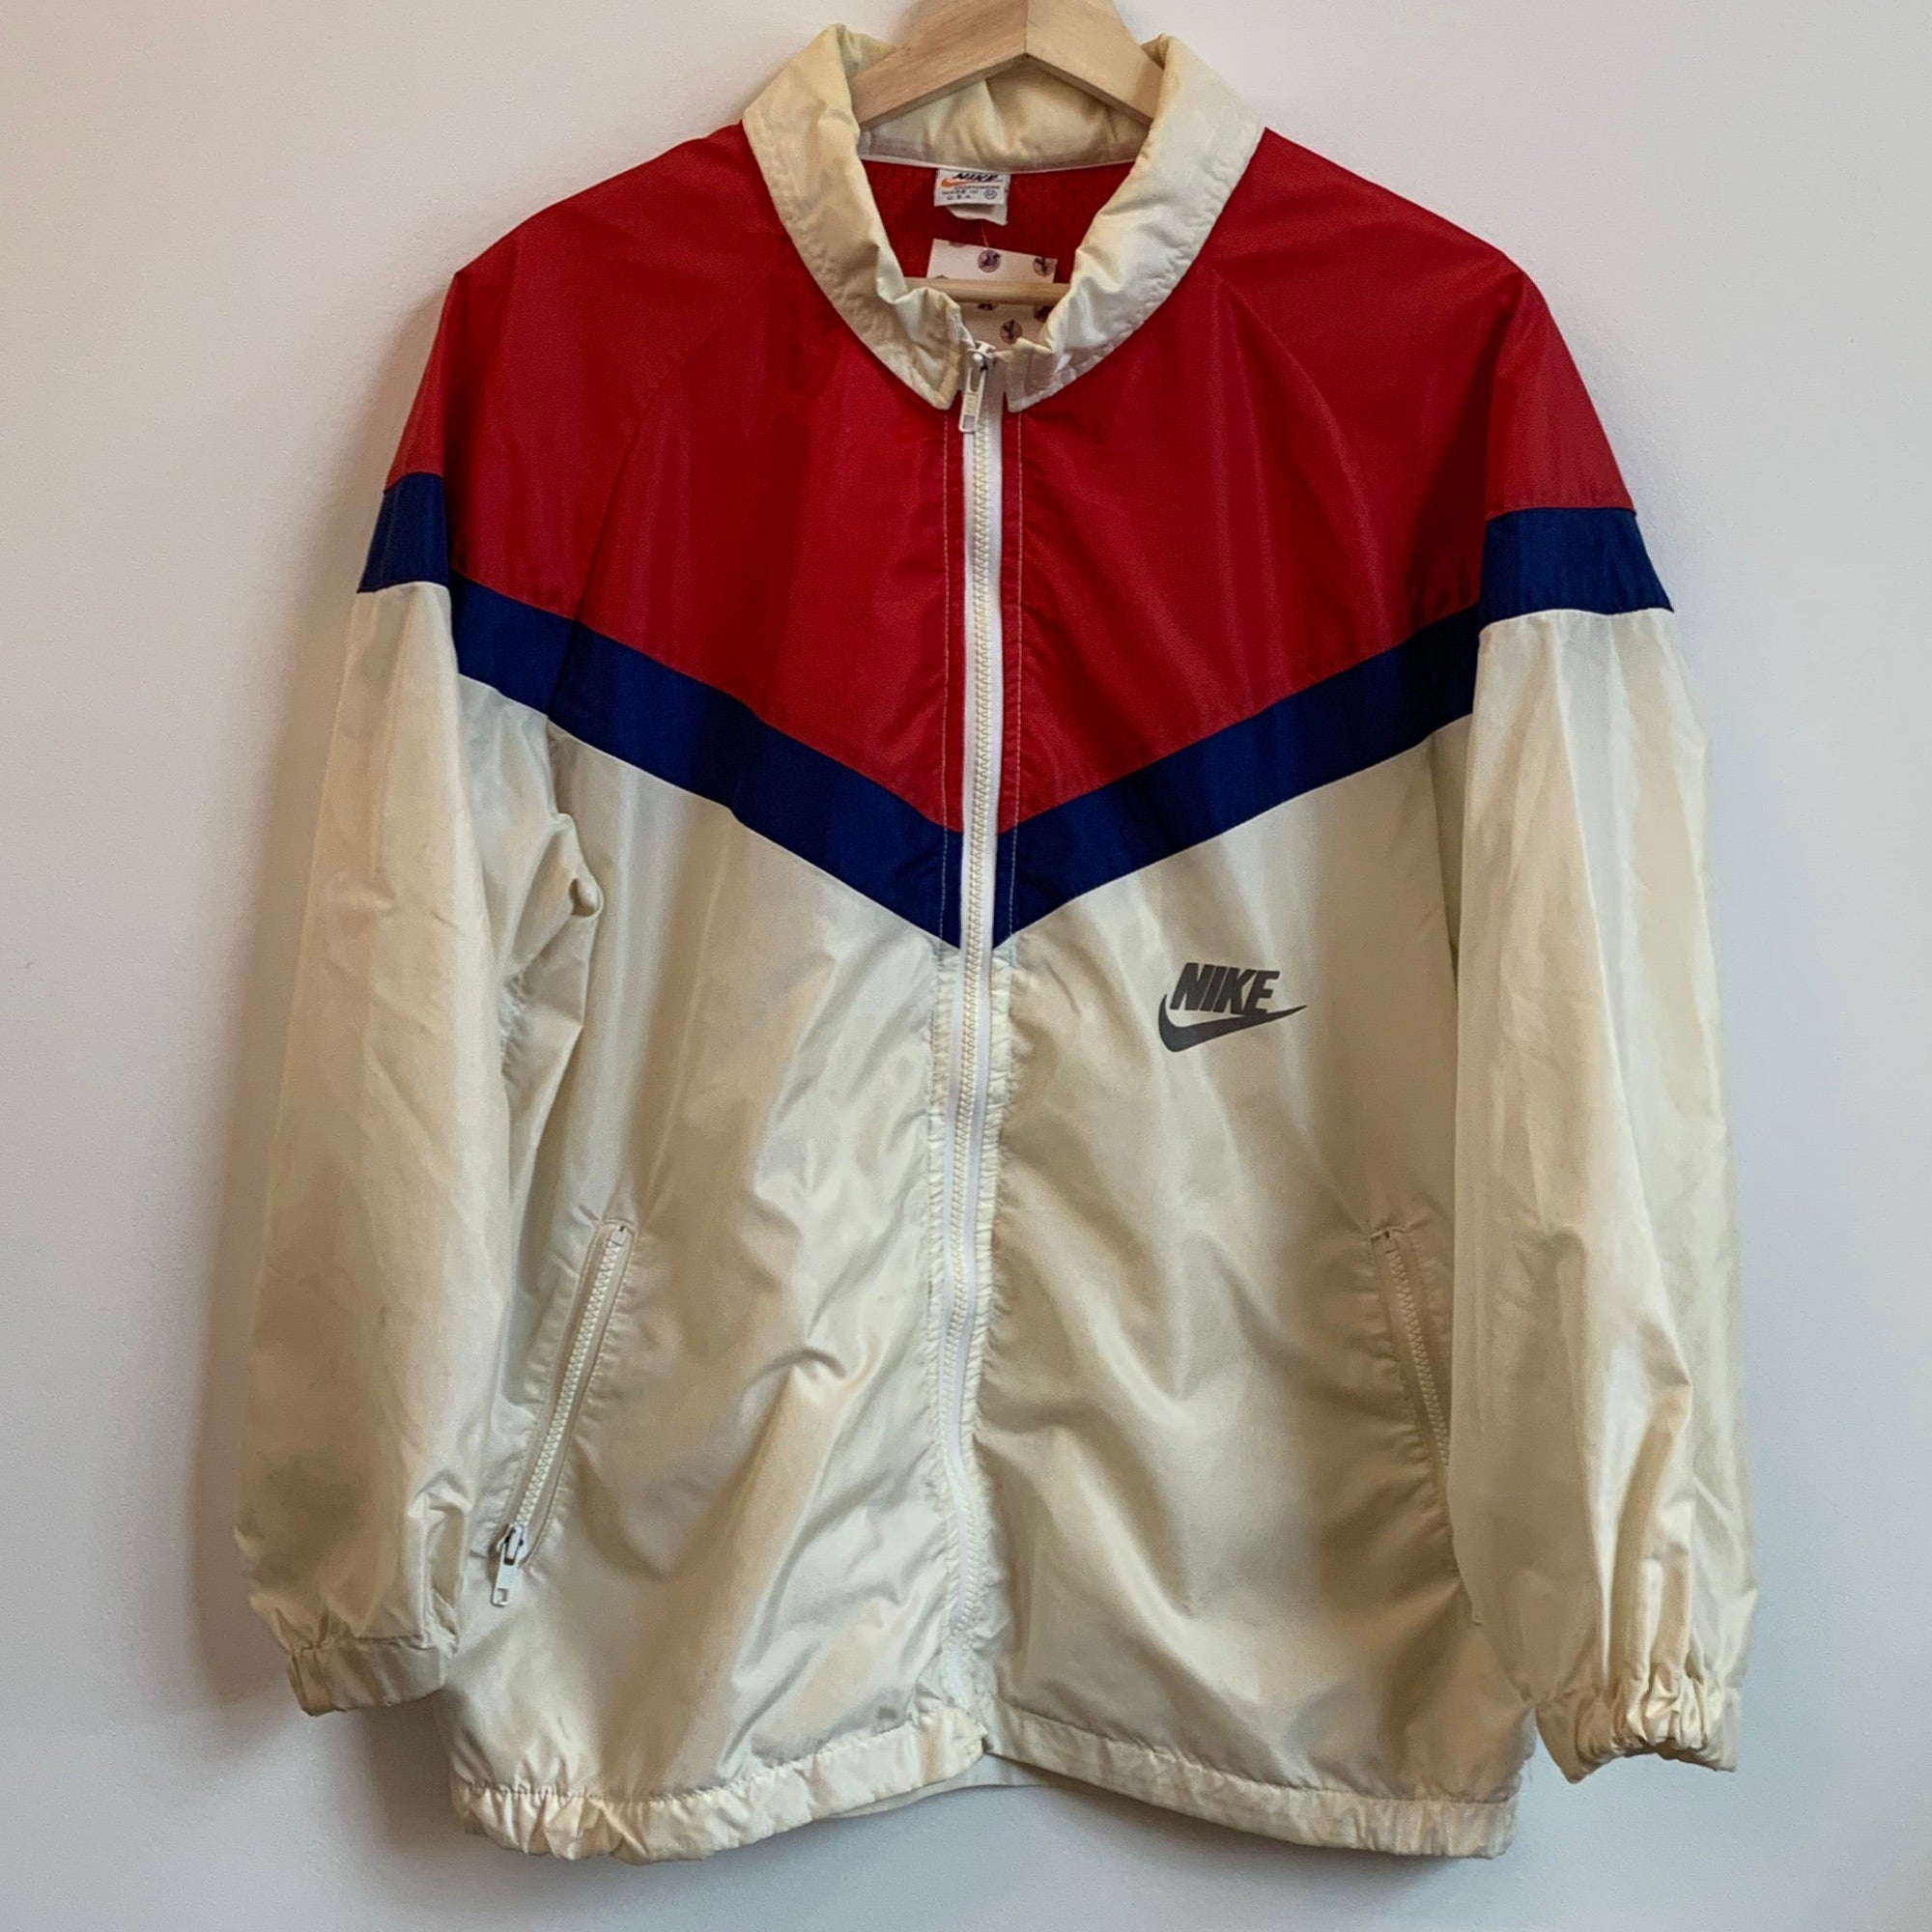 Nike Red/White/Blue Windbreaker Jacket